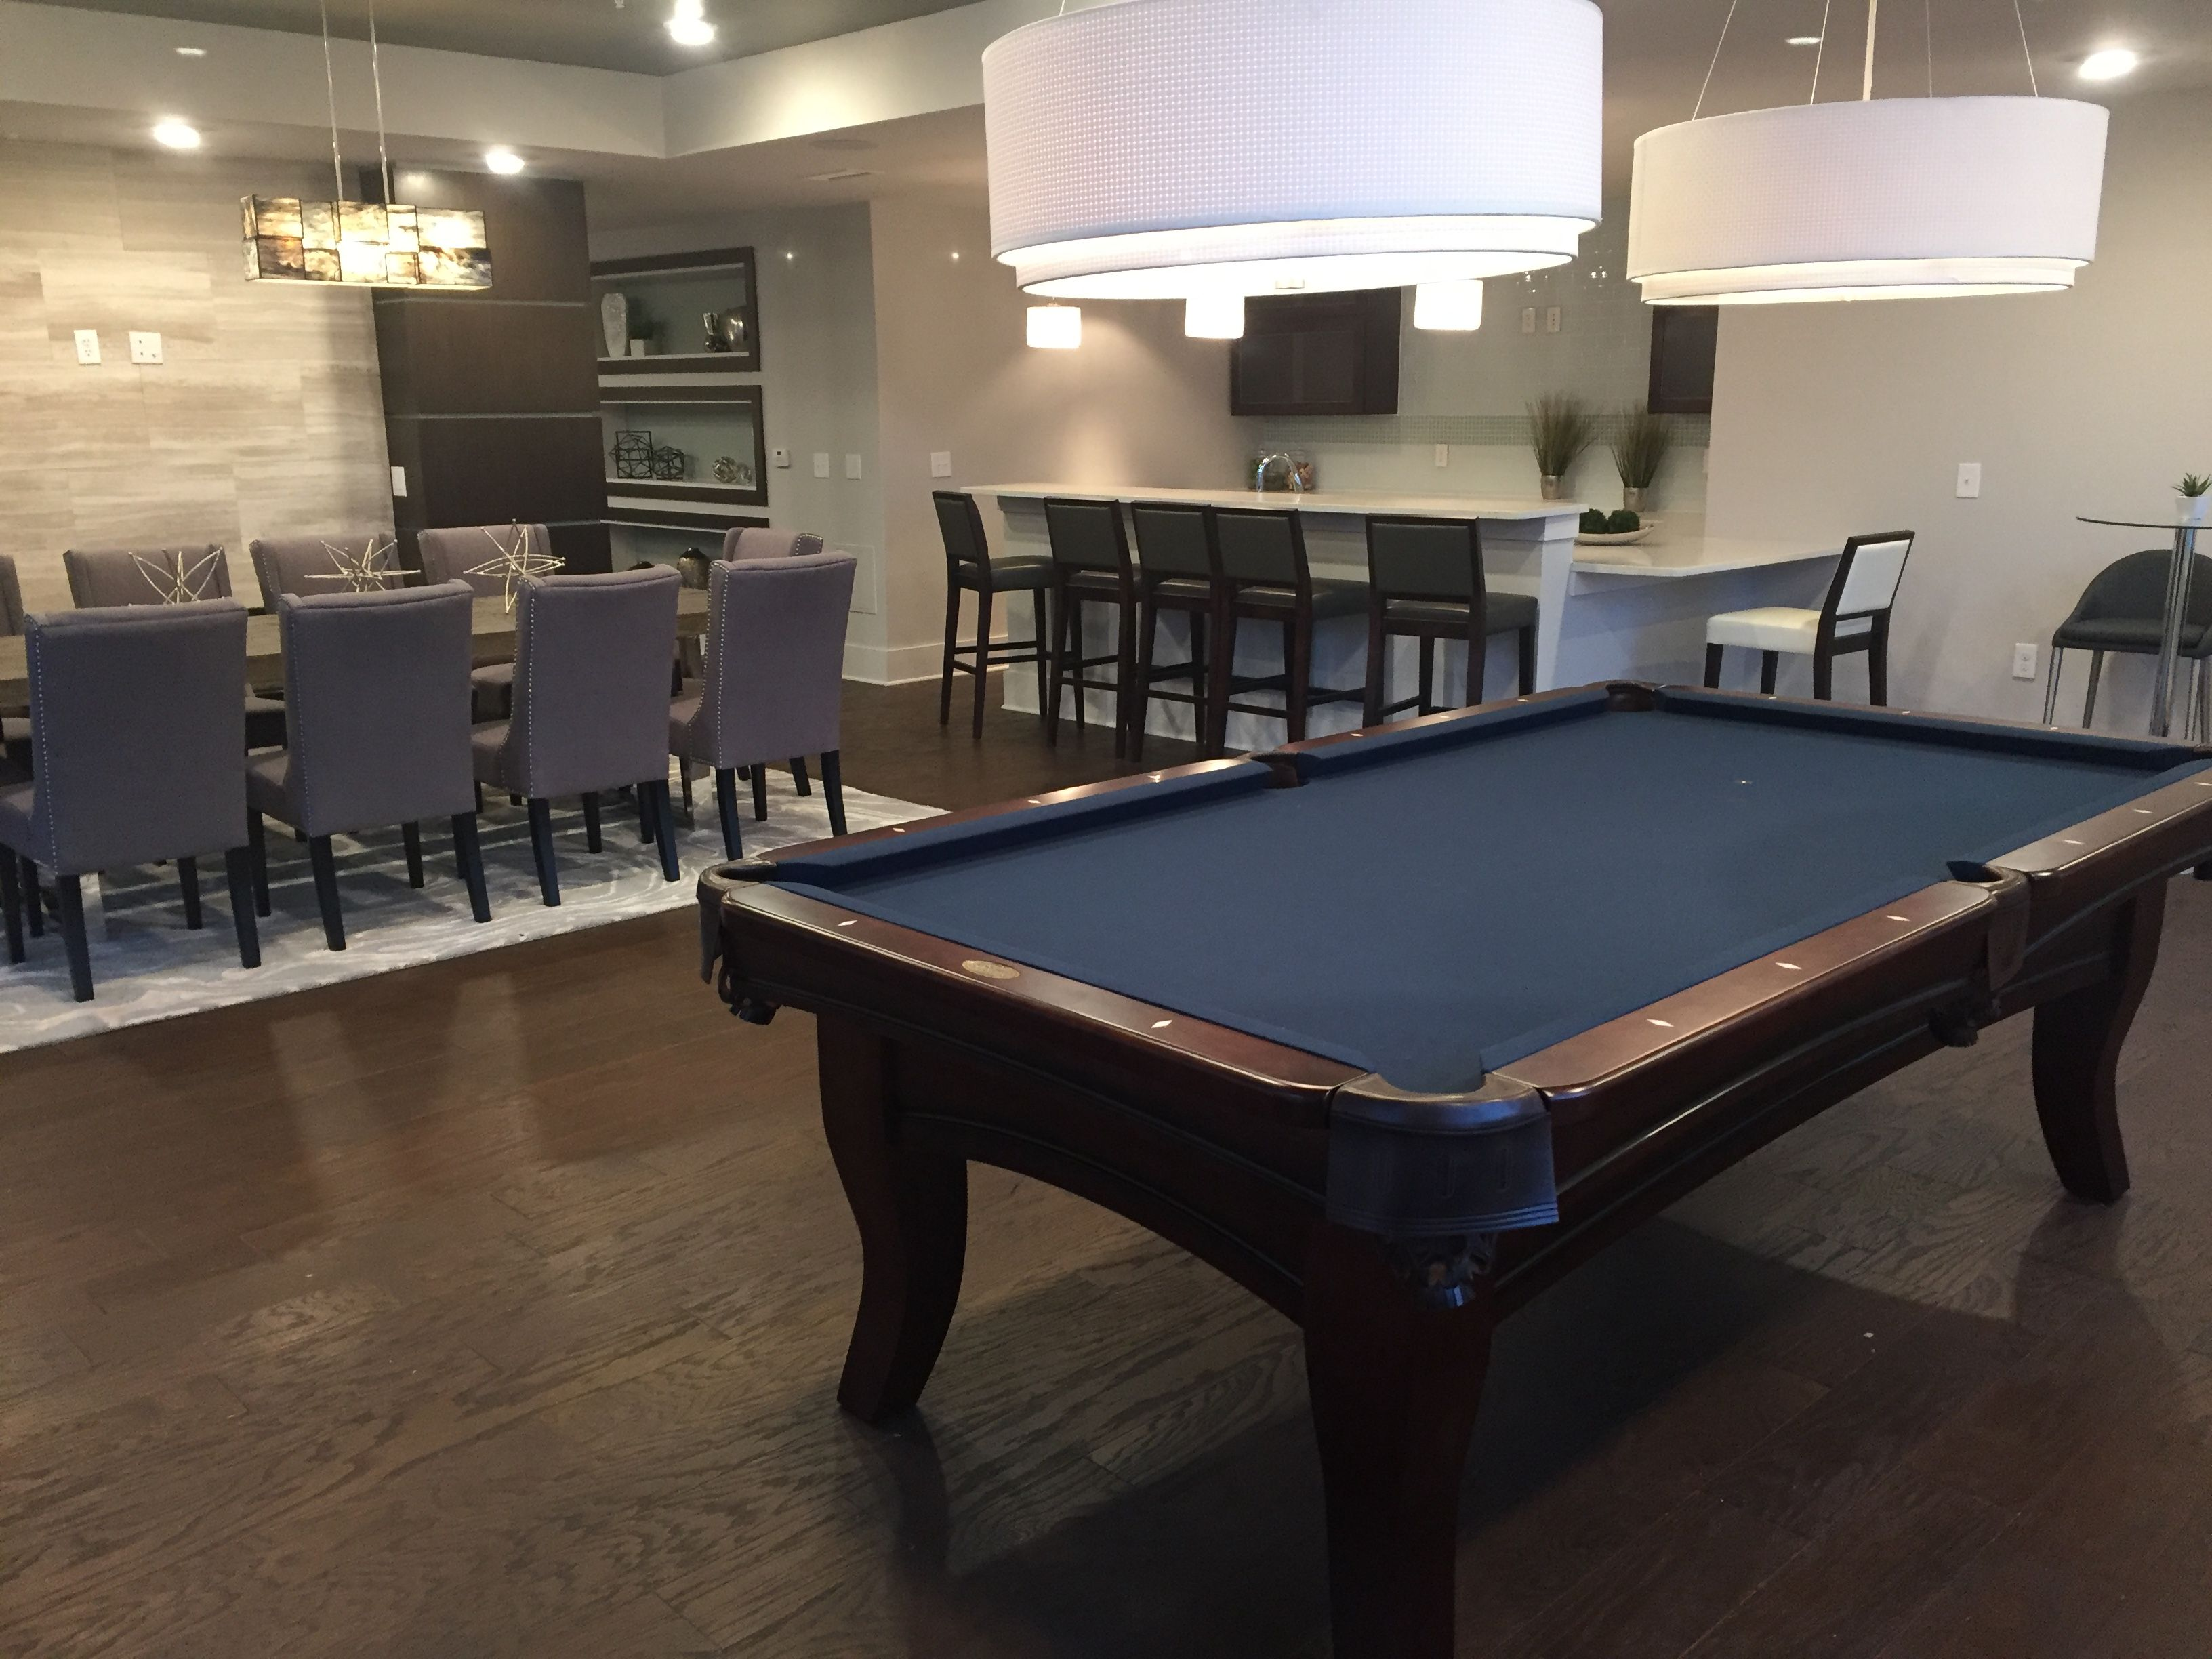 Olhausen Chicago Pool Table Installed By Everything Billiards - Olhausen 30th anniversary pool table price